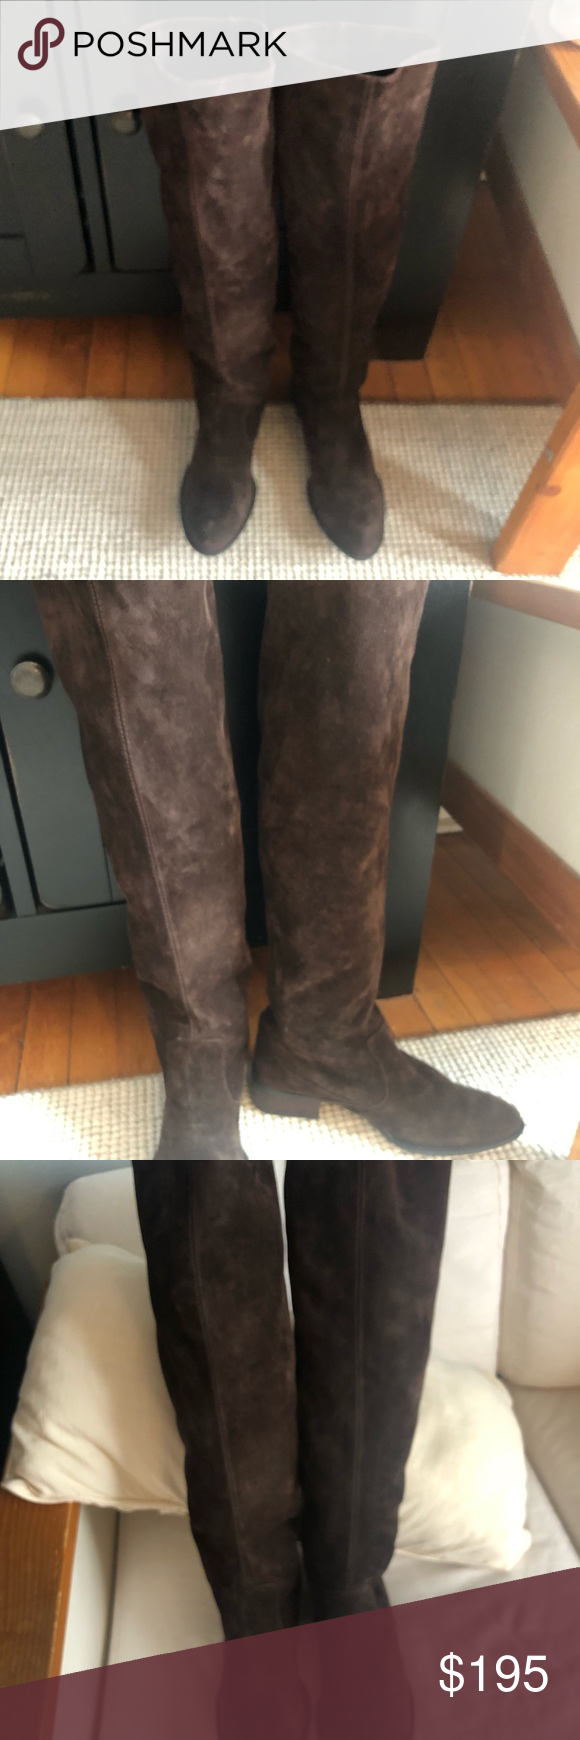 6001655c735 Born Suede Over the Knee Boots Cricket Born Boots. Pristine ...